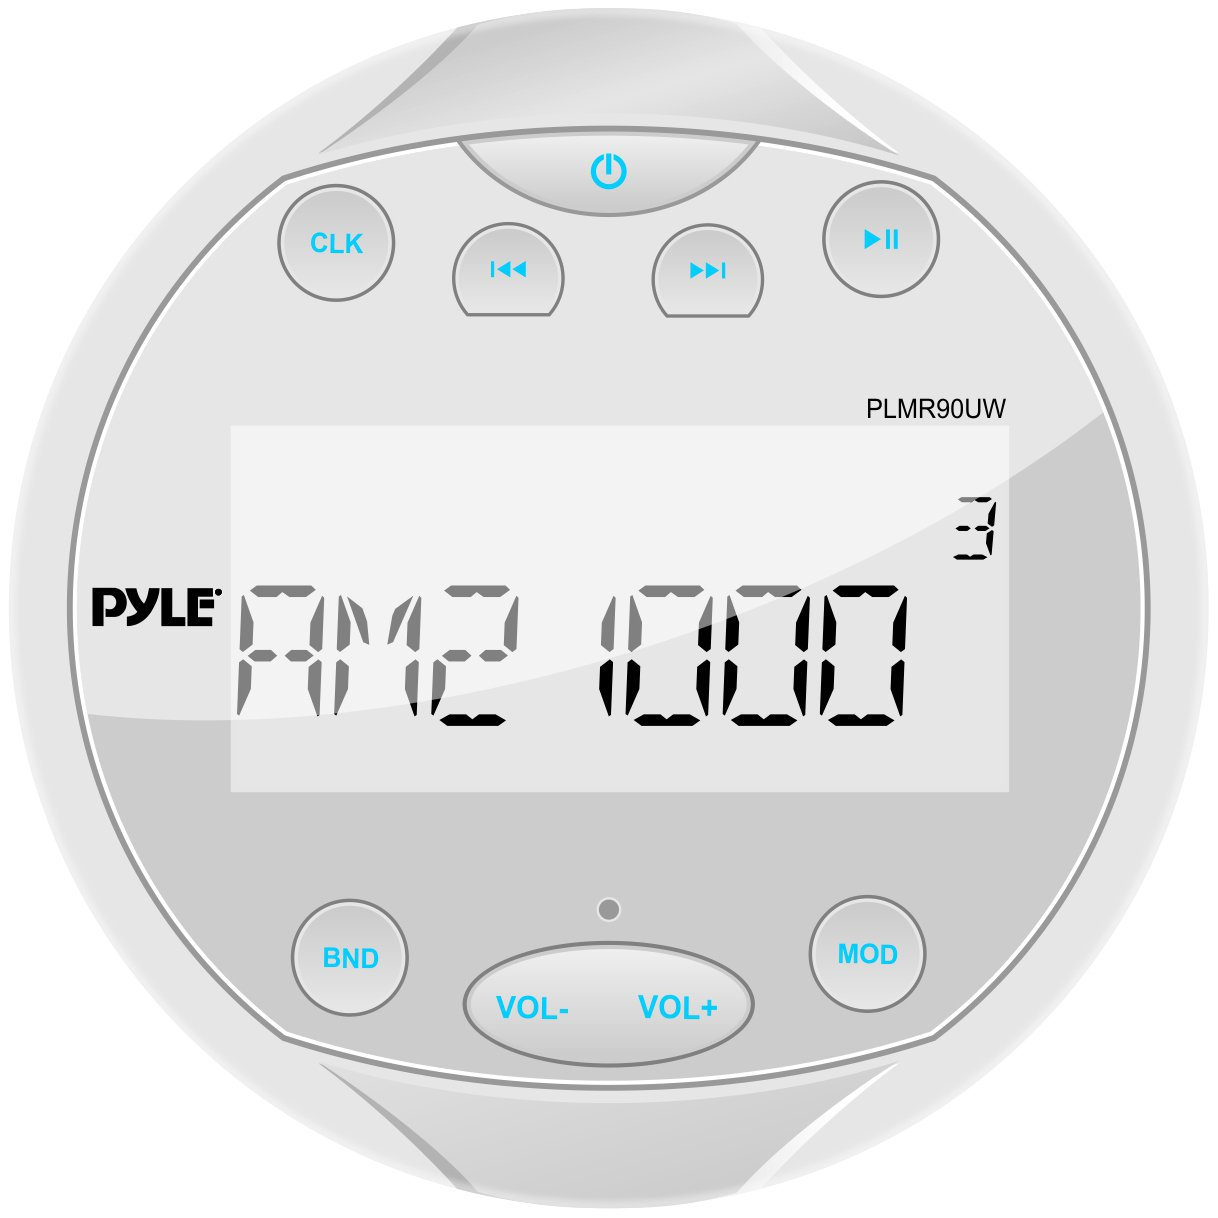 611PS7YMFaL._SL1218_ amazon com pyle plmr90uw hydra waterproof bluetooth marine  at crackthecode.co